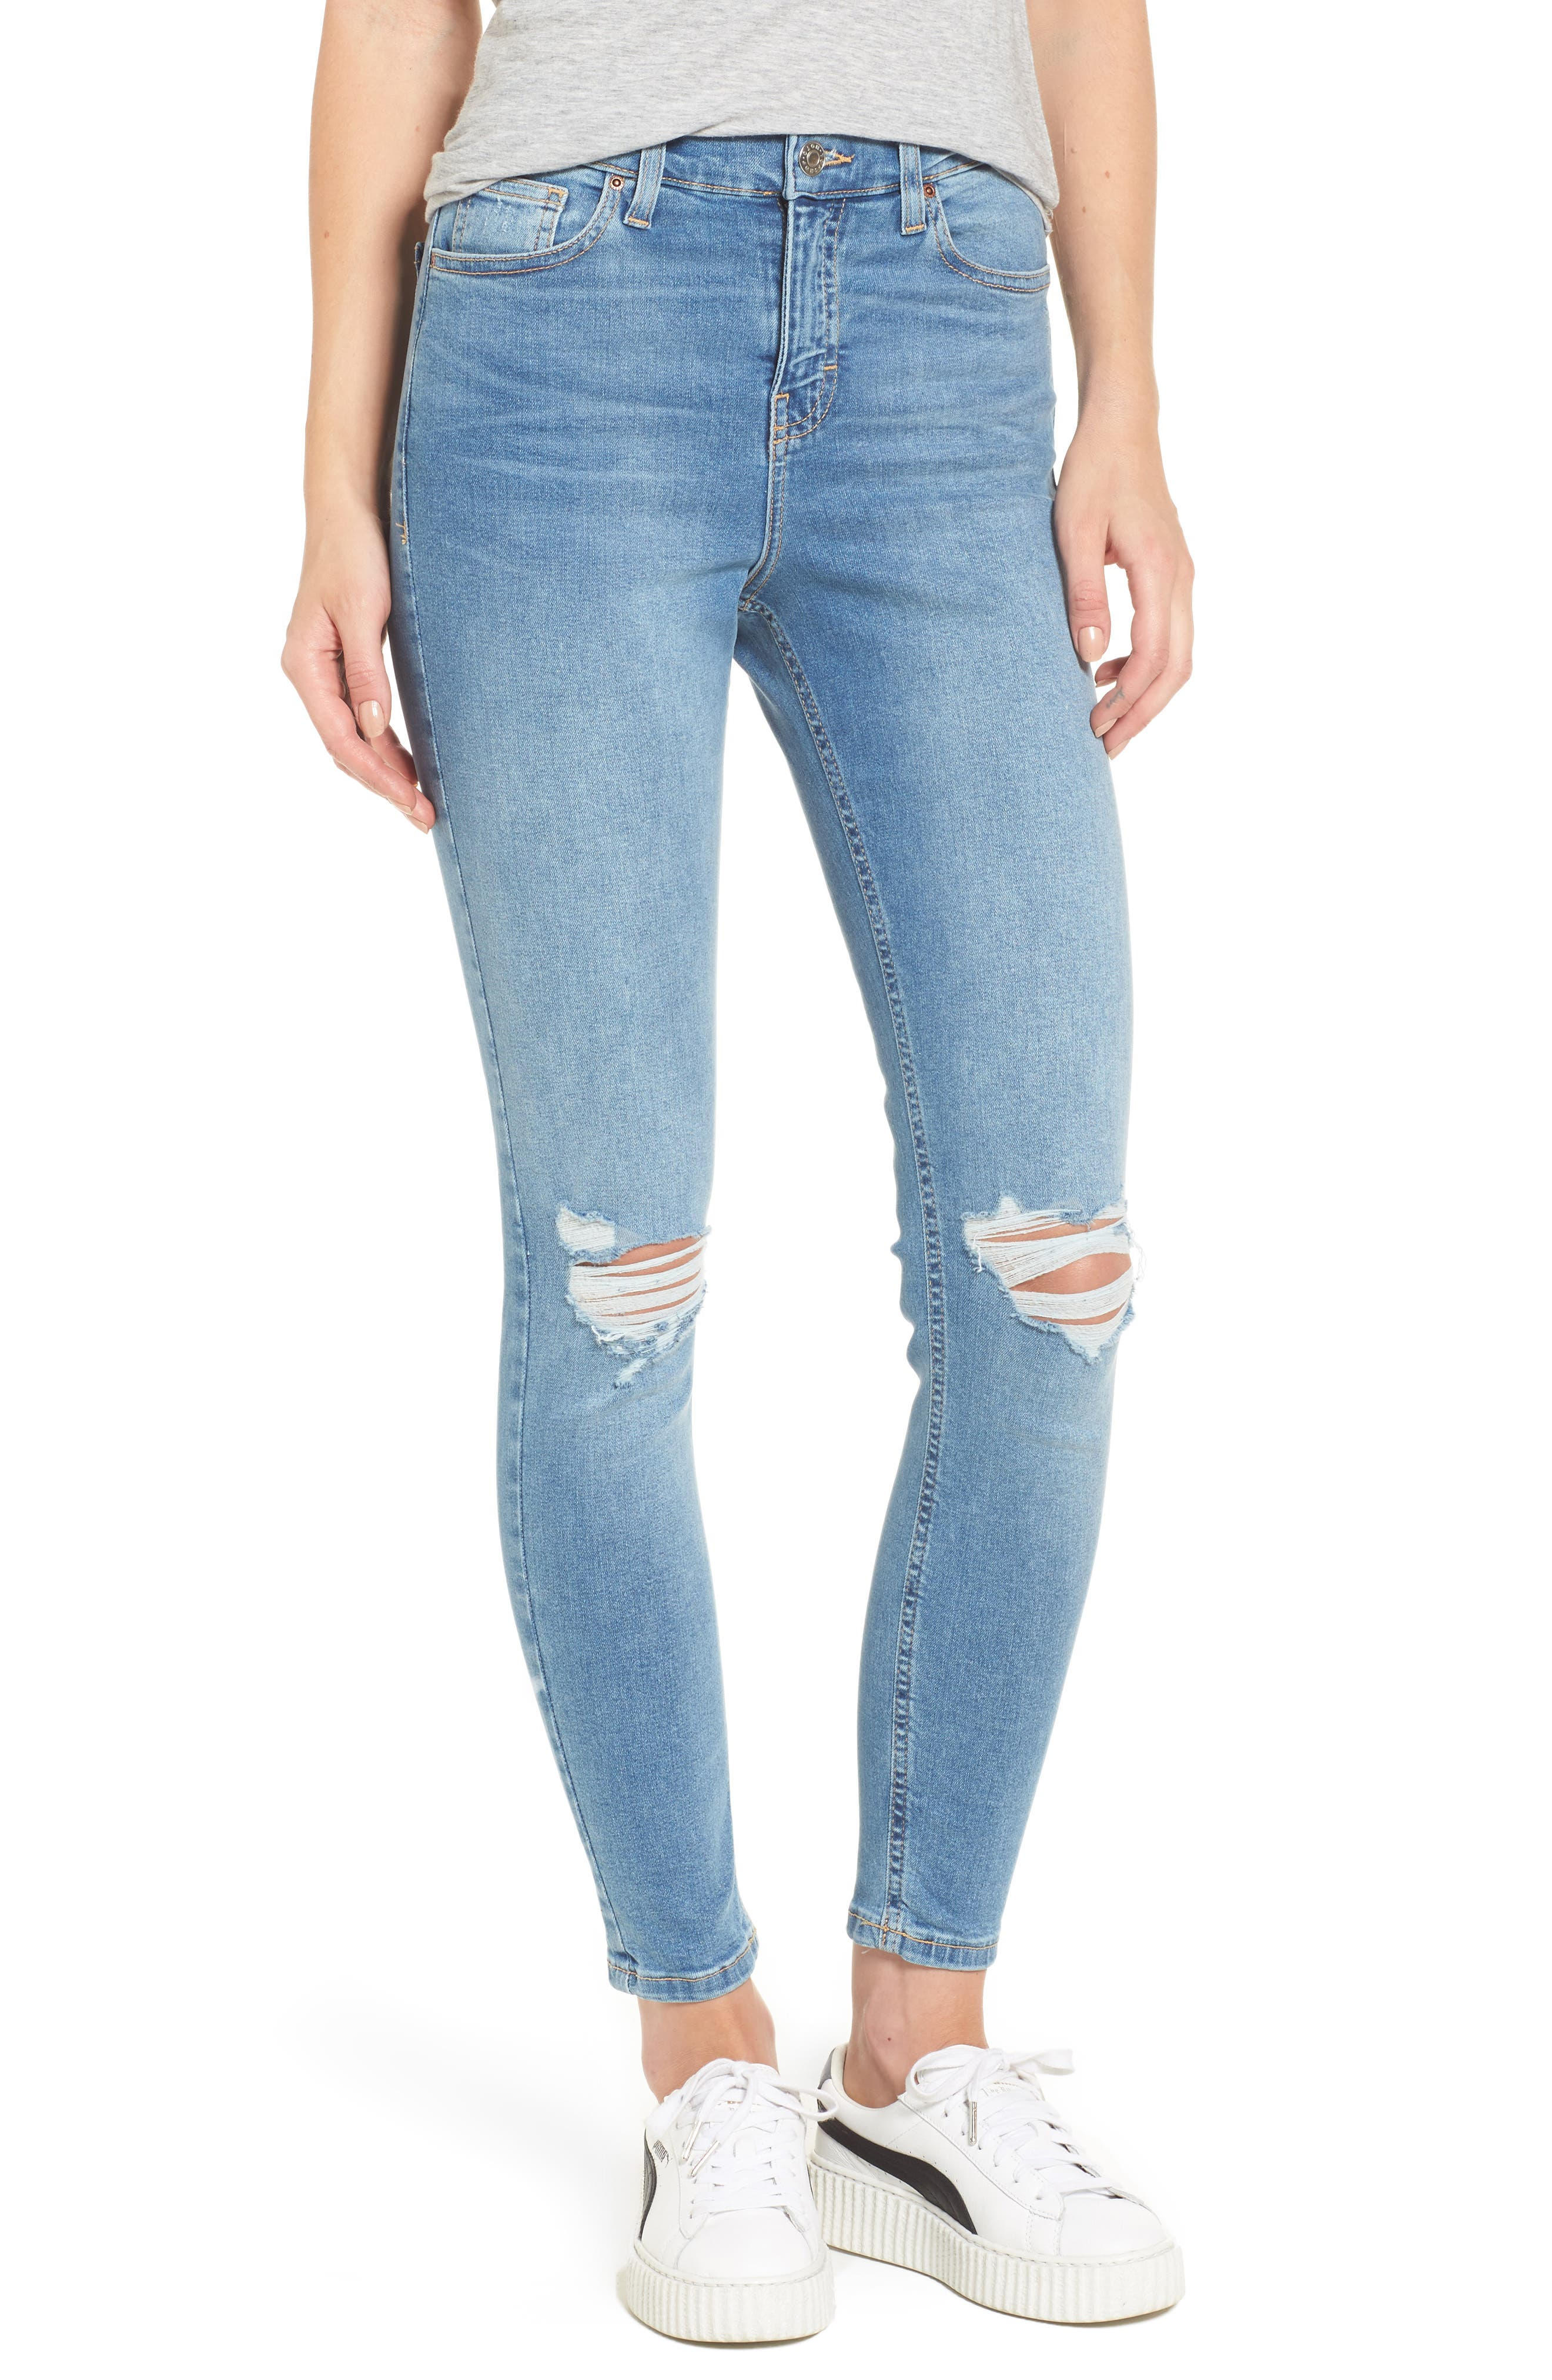 Moto Jamie Ripped High Waist Ankle Skinny Jeans,                         Main,                         color, 400